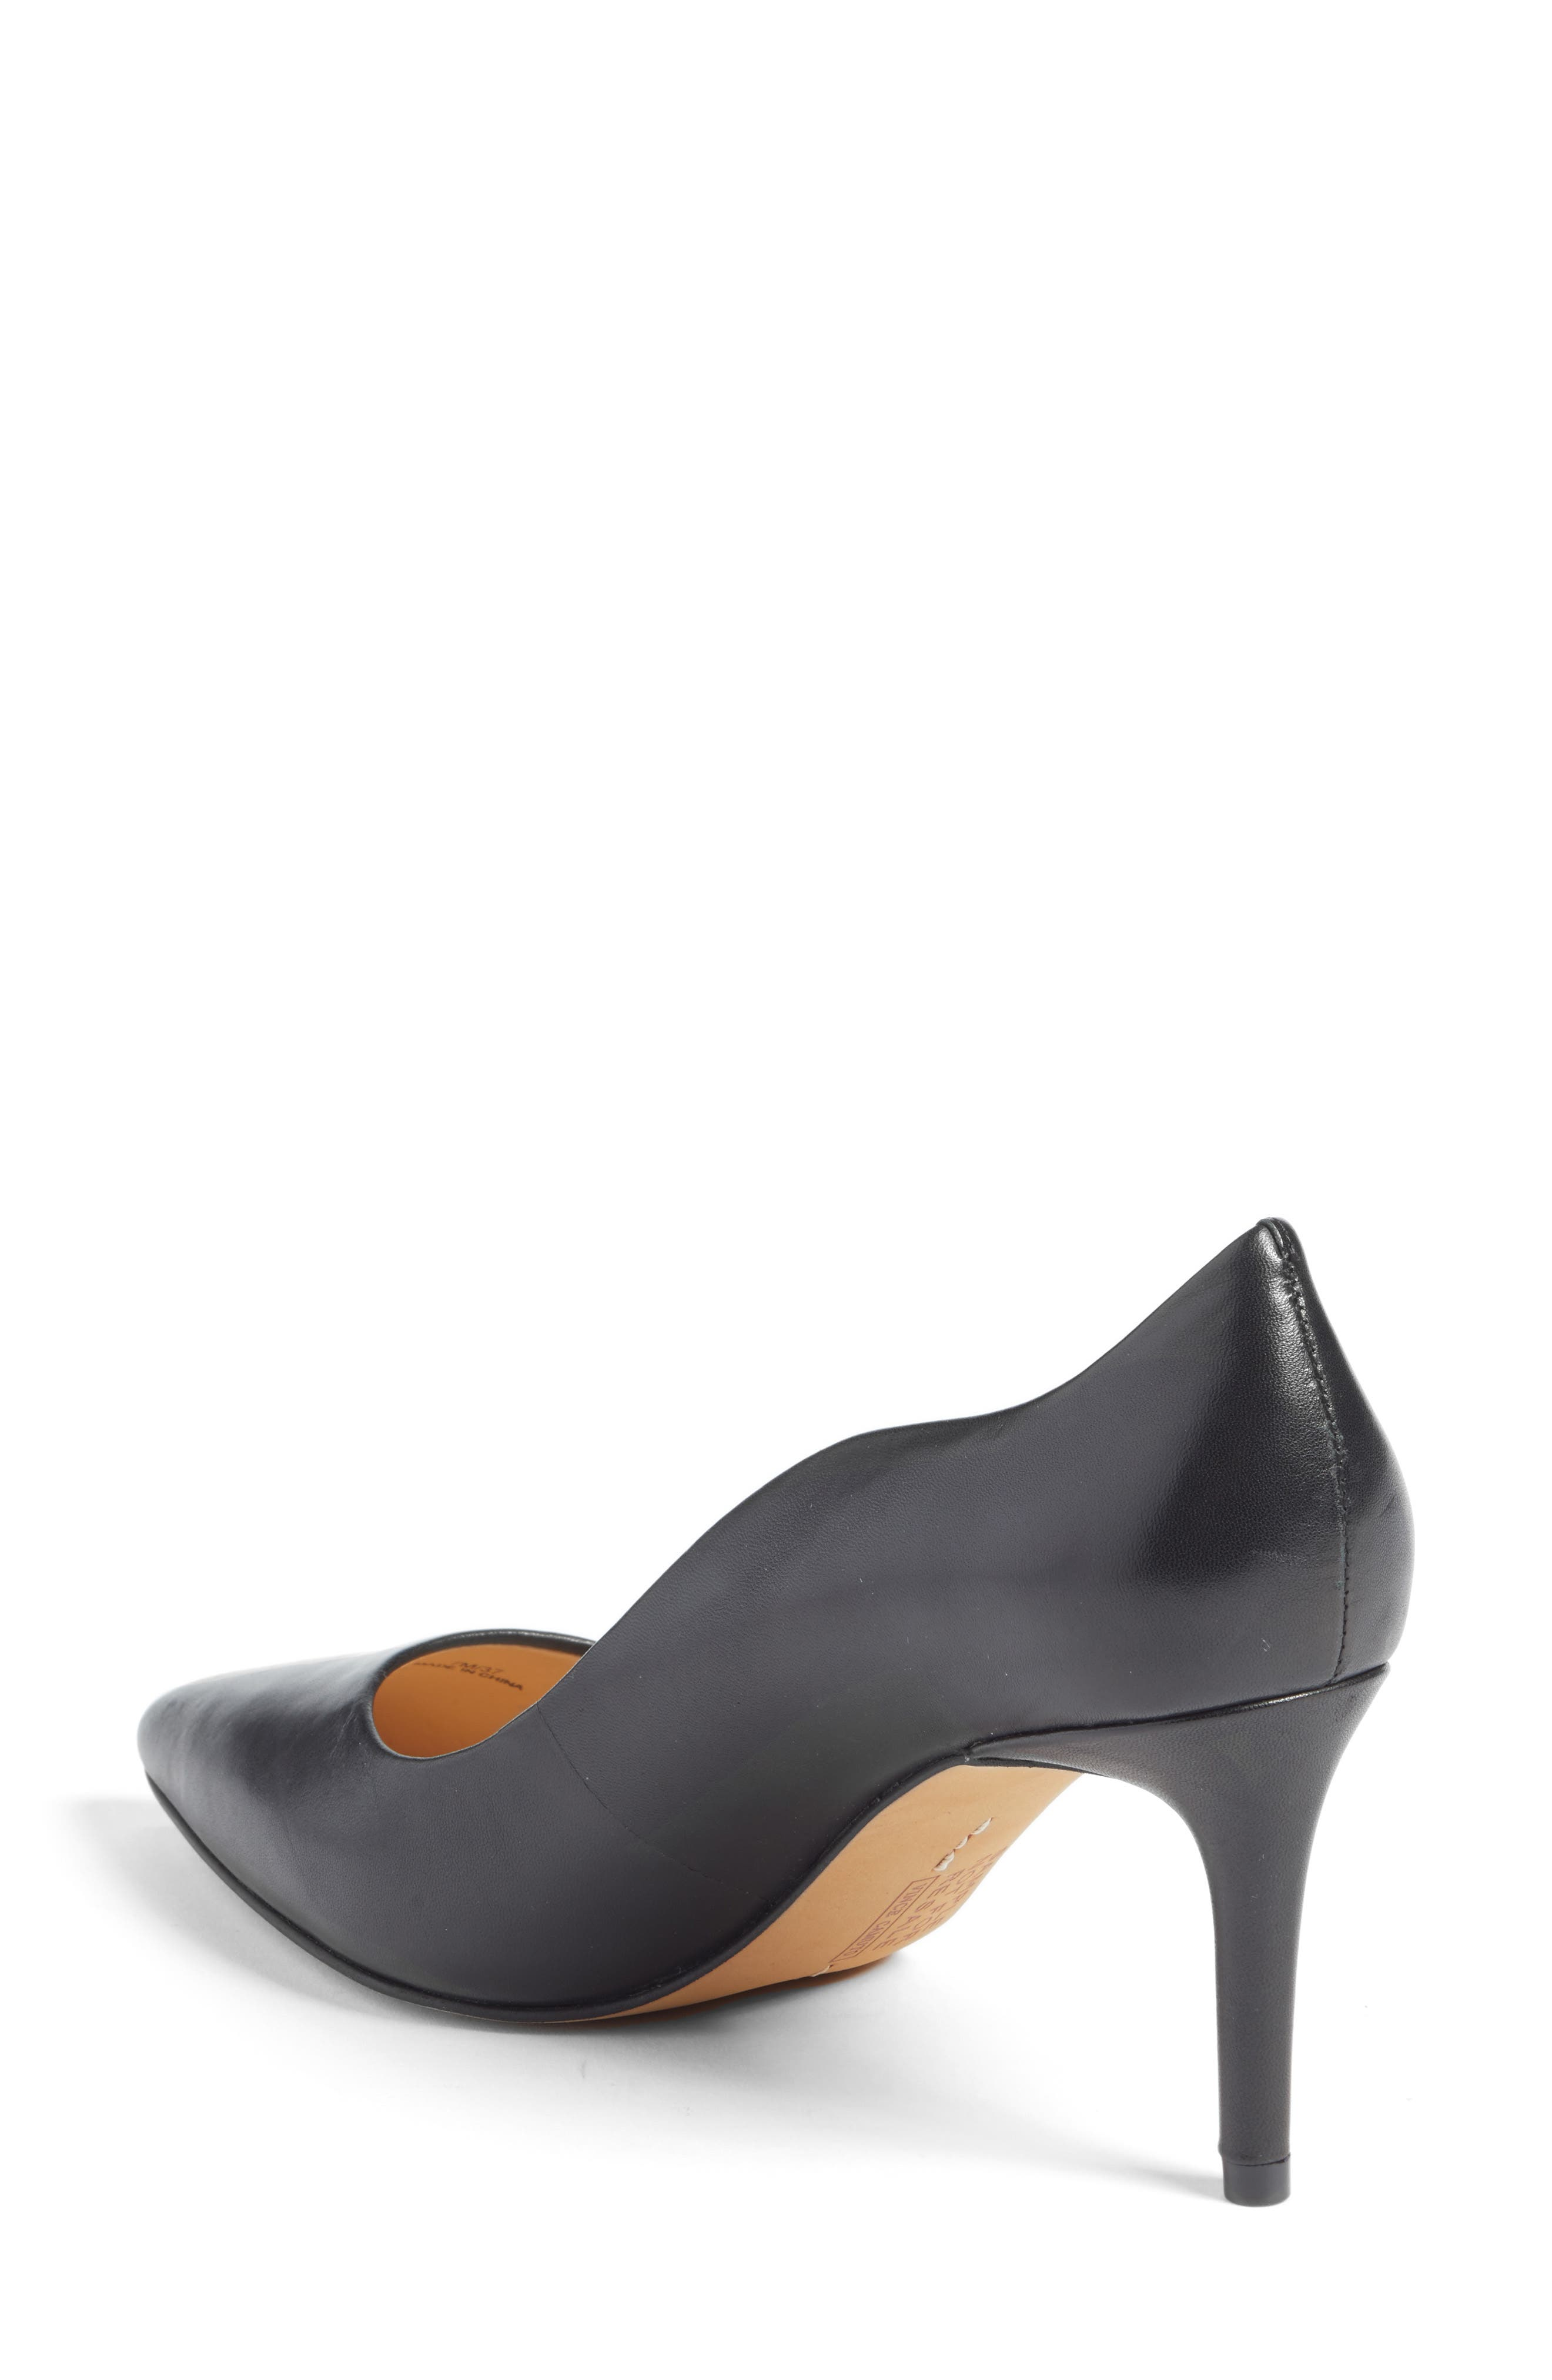 Jaynita Pointy Toe Pump,                             Alternate thumbnail 2, color,                             001